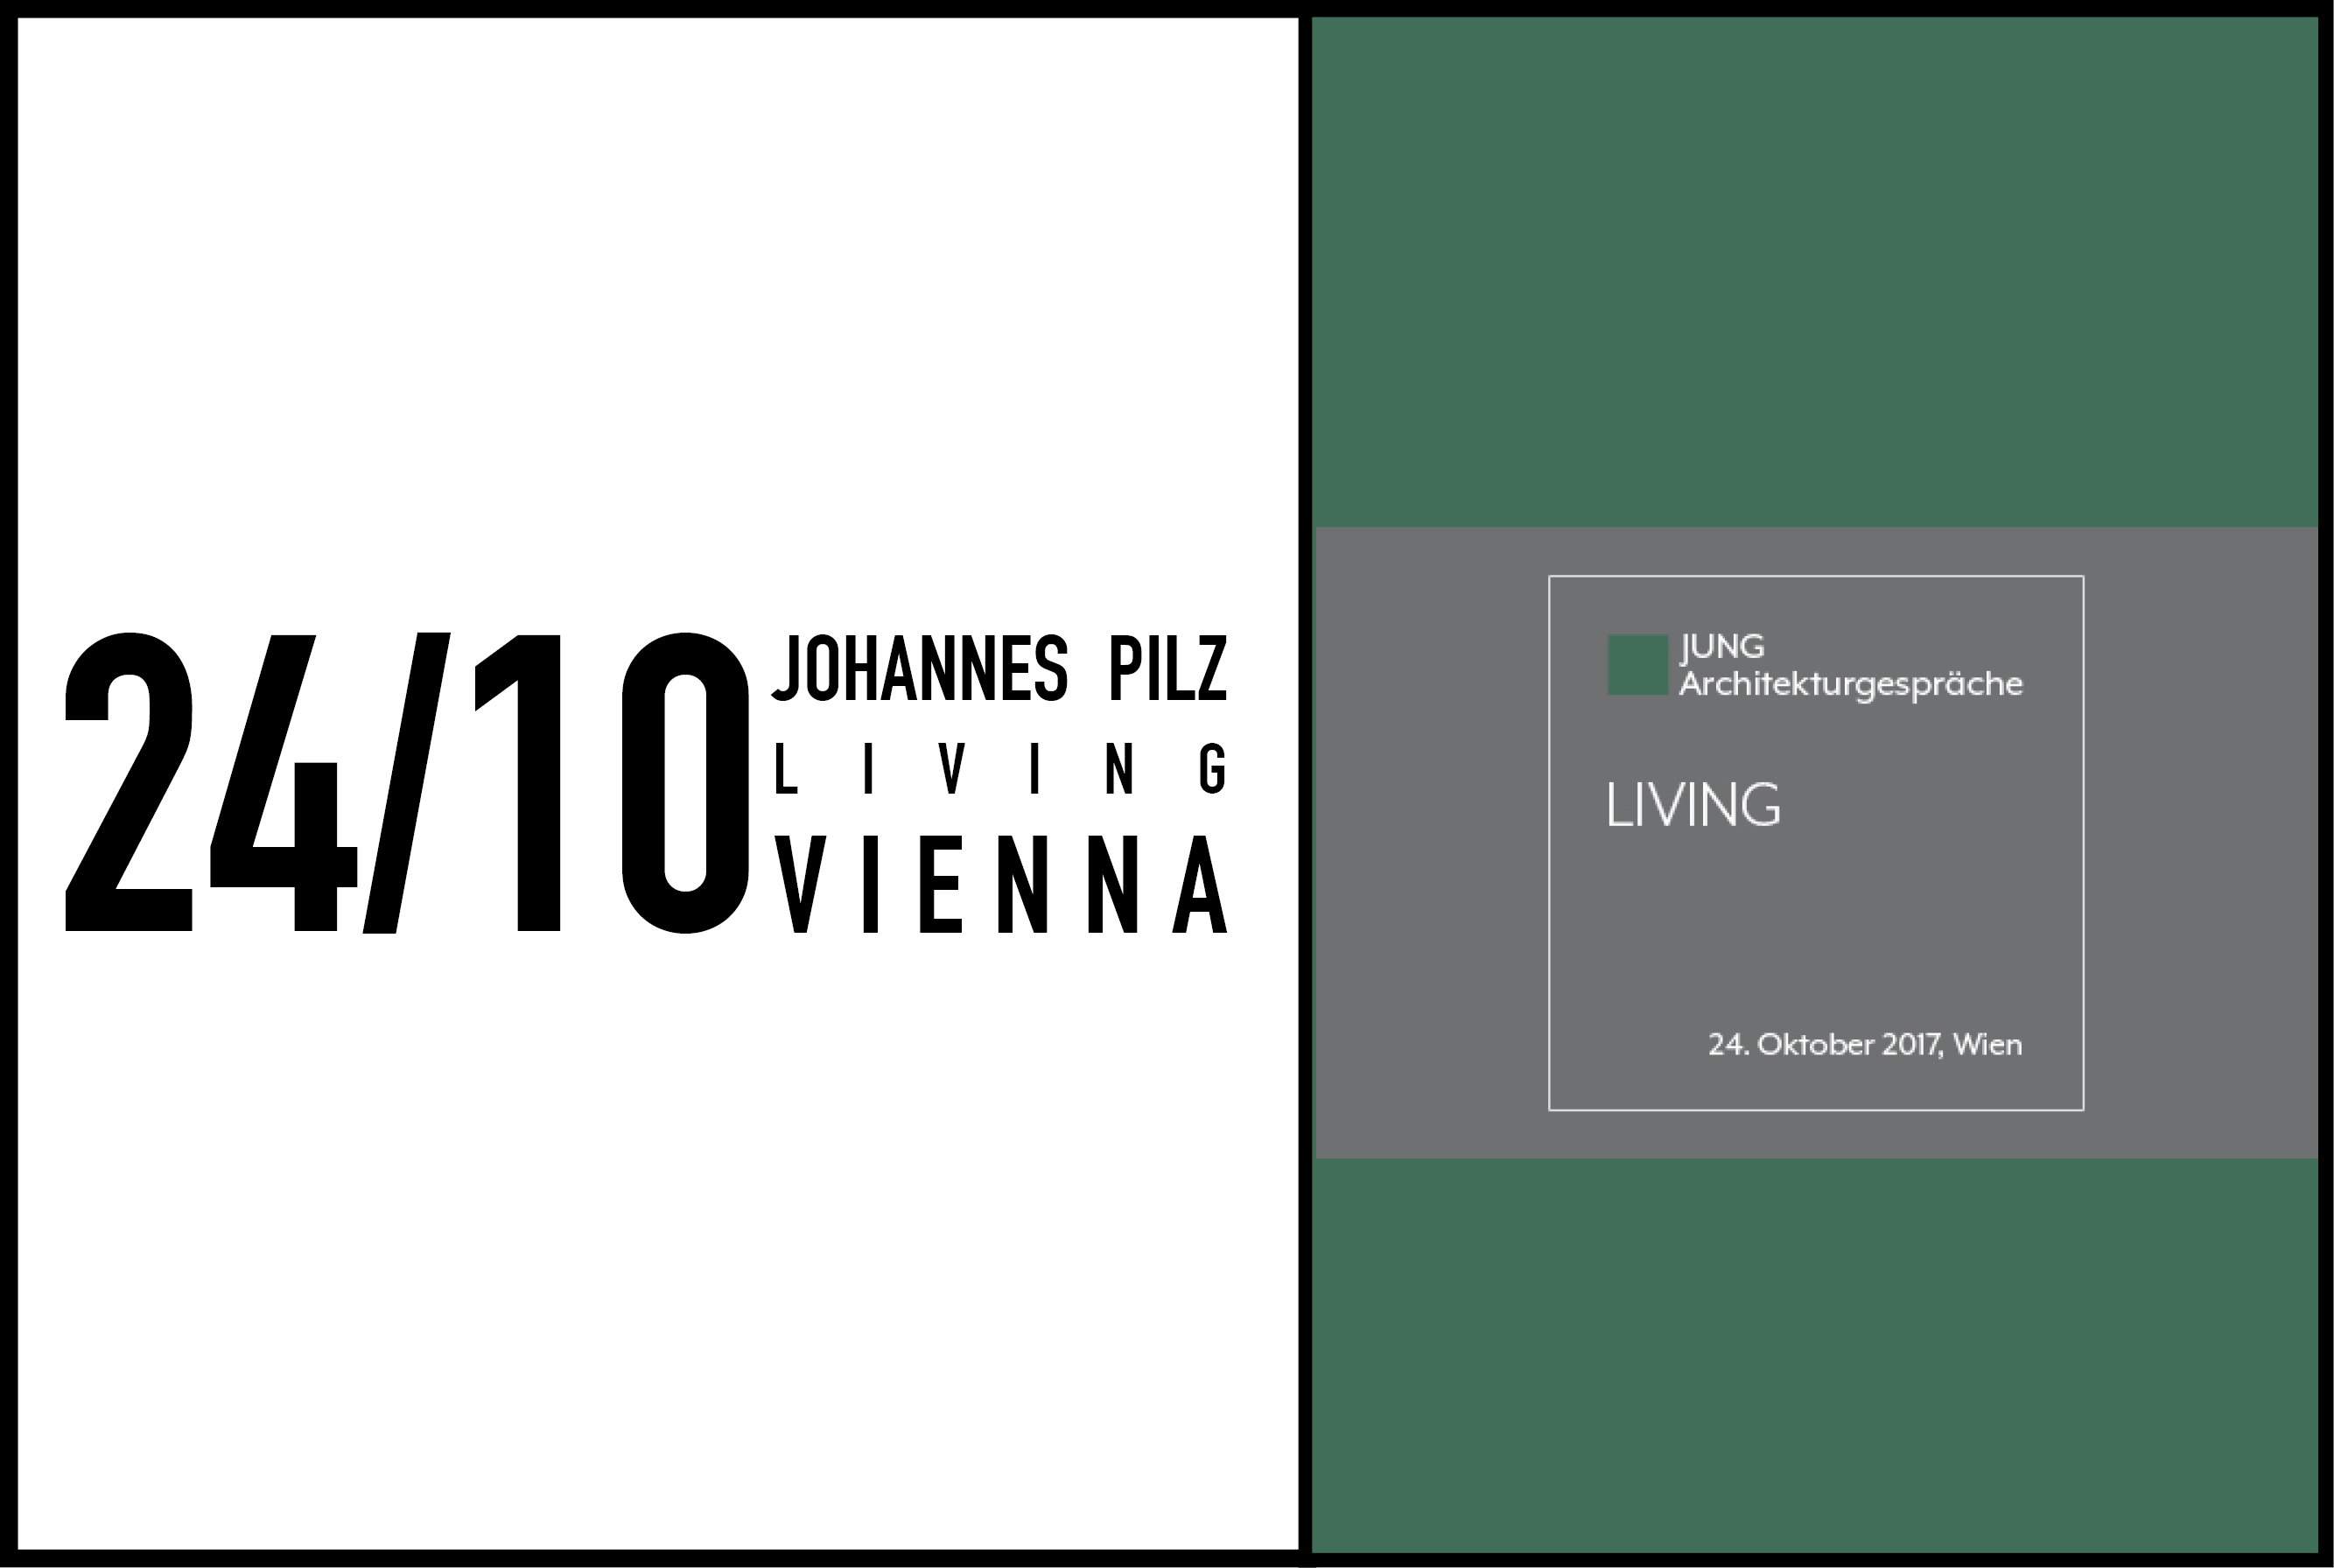 MVRDV's Johannes Pilz to give lecture at Jung Architekturgespräche in Vienna, Austria, 24 October 2017